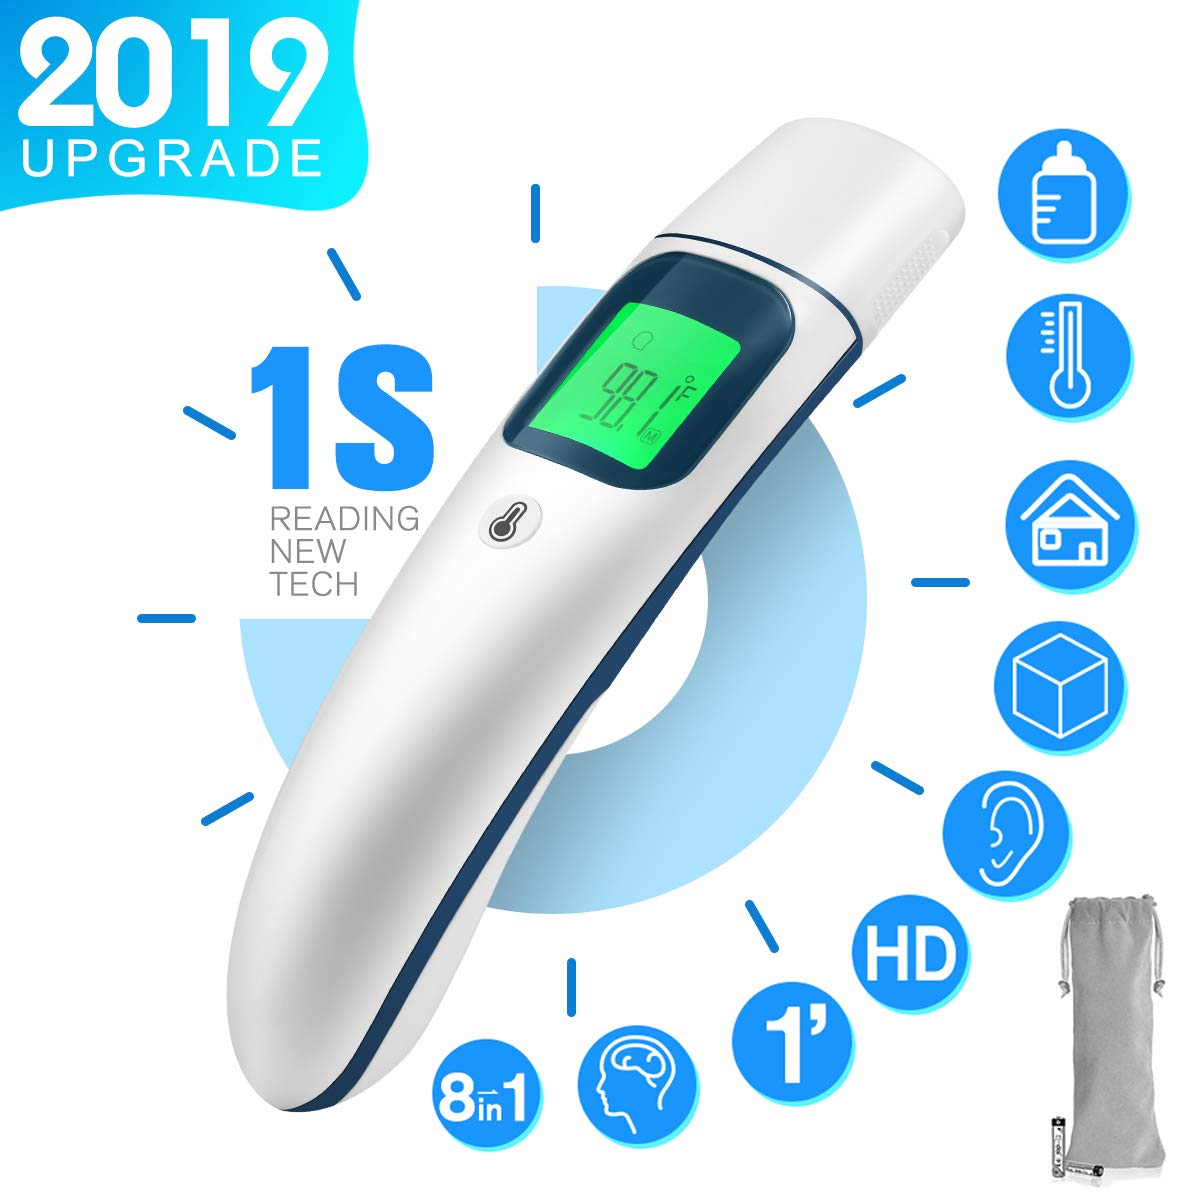 New Version Forehead and Ear Thermometer for Fever by Chooseen Infrared Fever Thermometer,1s Accurate Reading,8-in-1 Professional Digital Medical Thermometer for Infant, Children and Adult